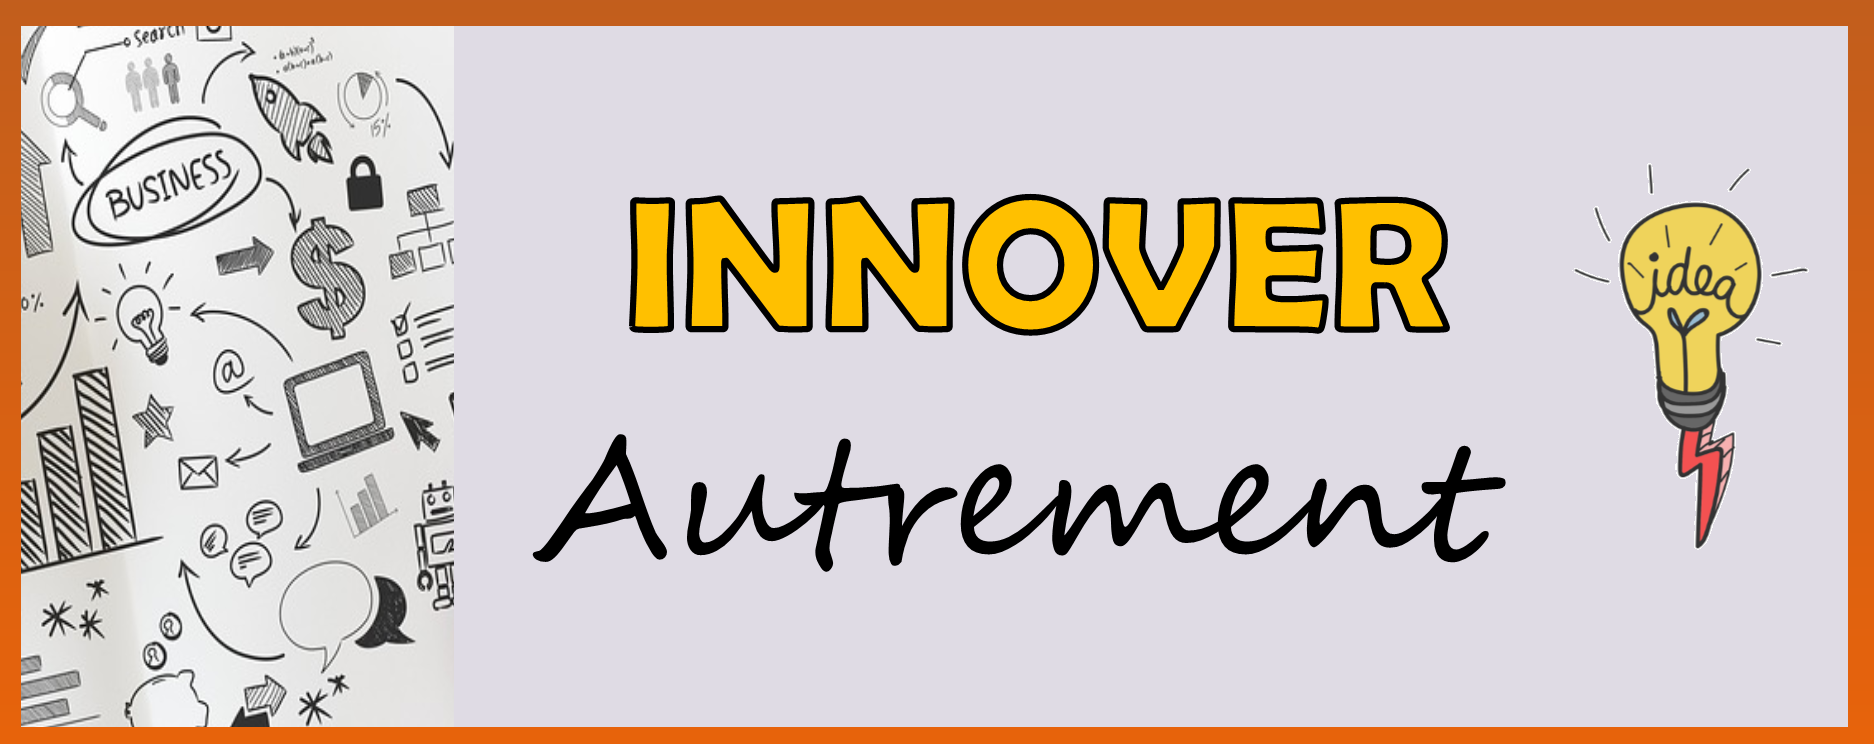 Innover autrement